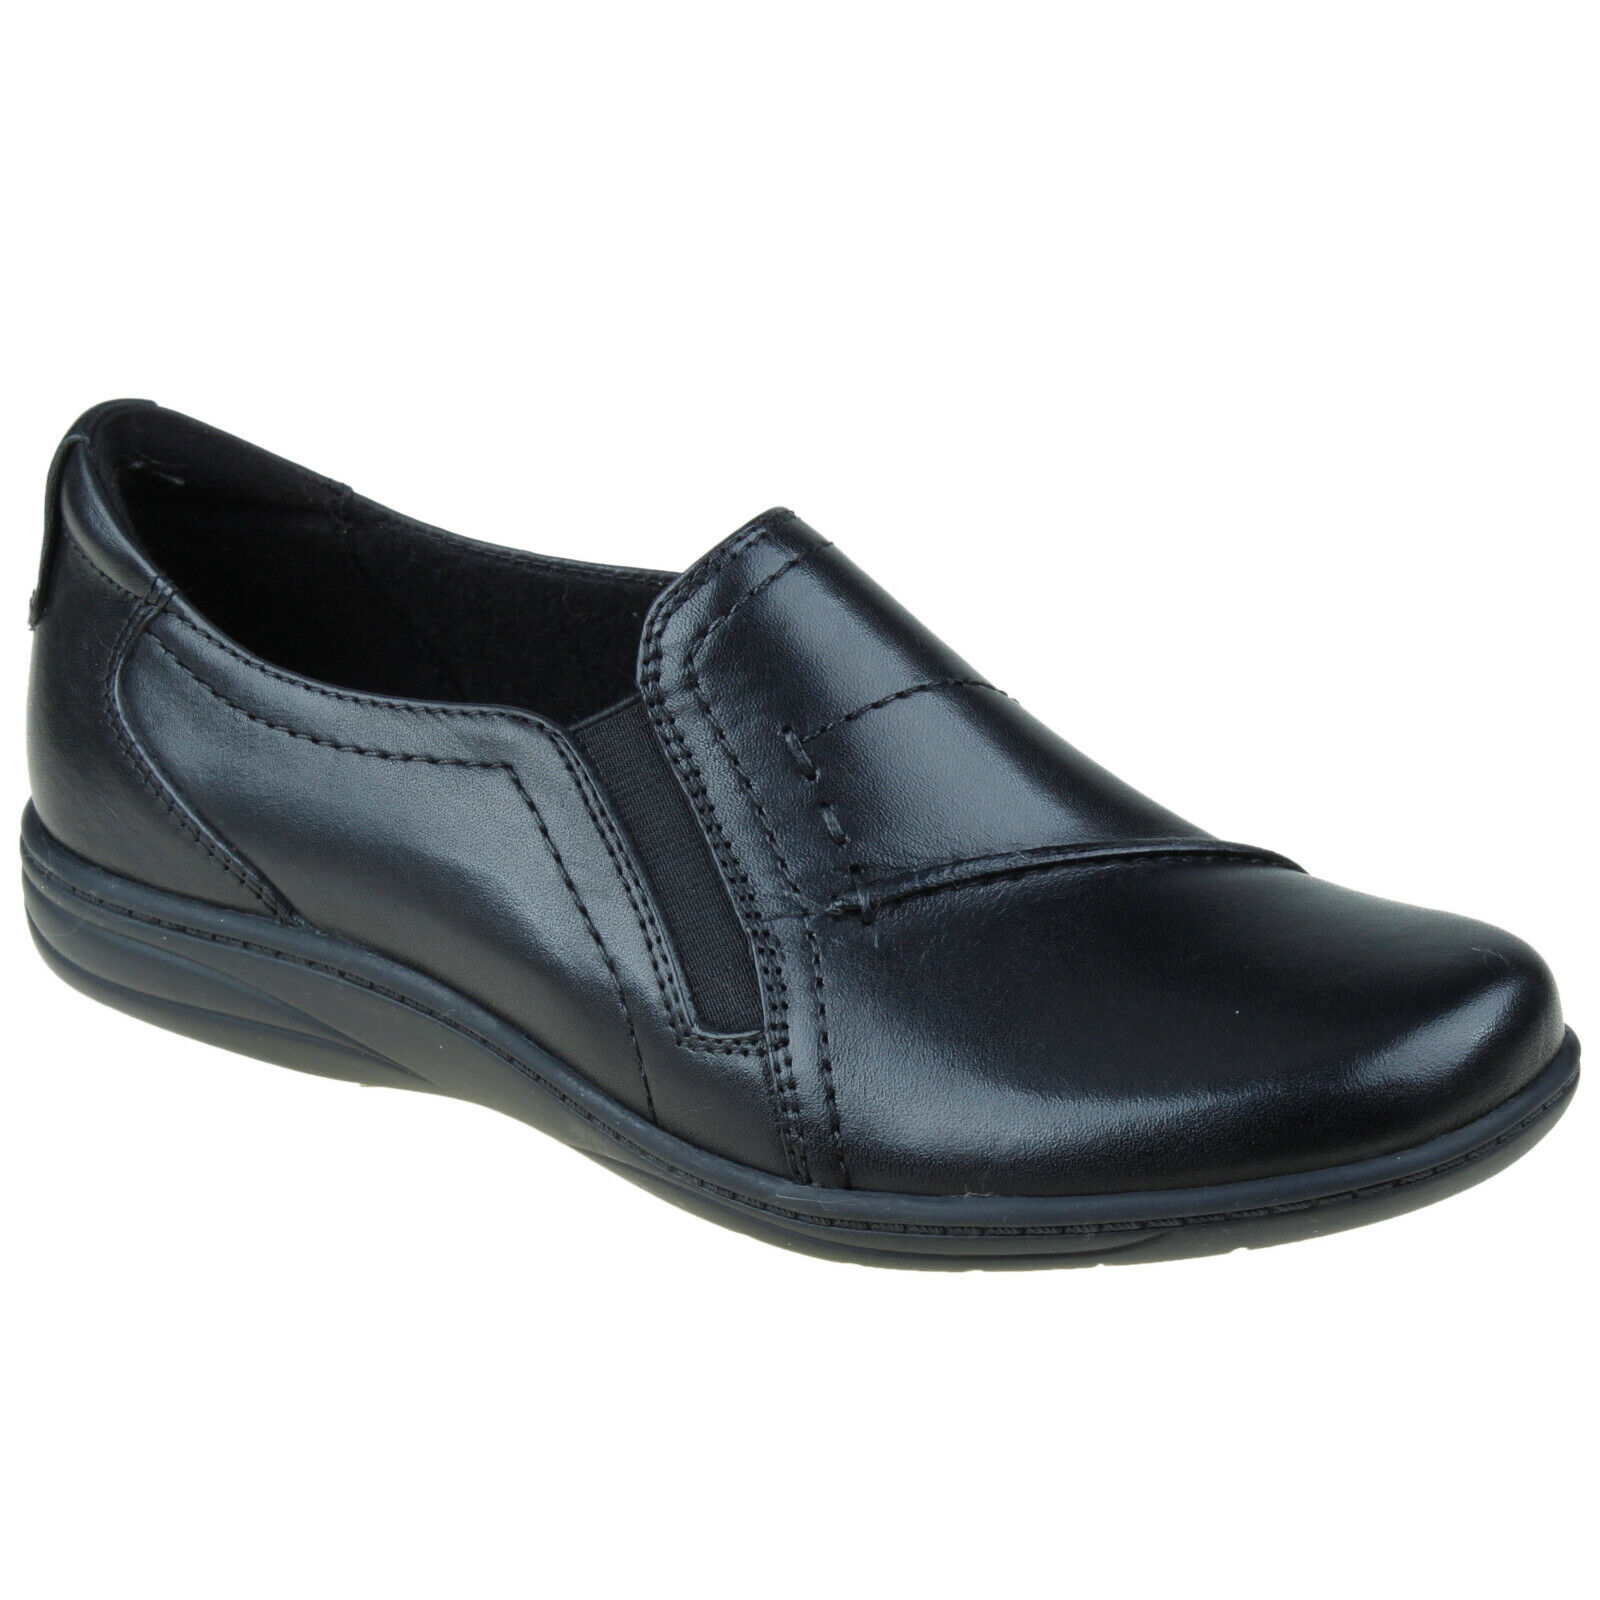 Planet Shoes Jemim Black Leather Comfort & Support Casual Wo